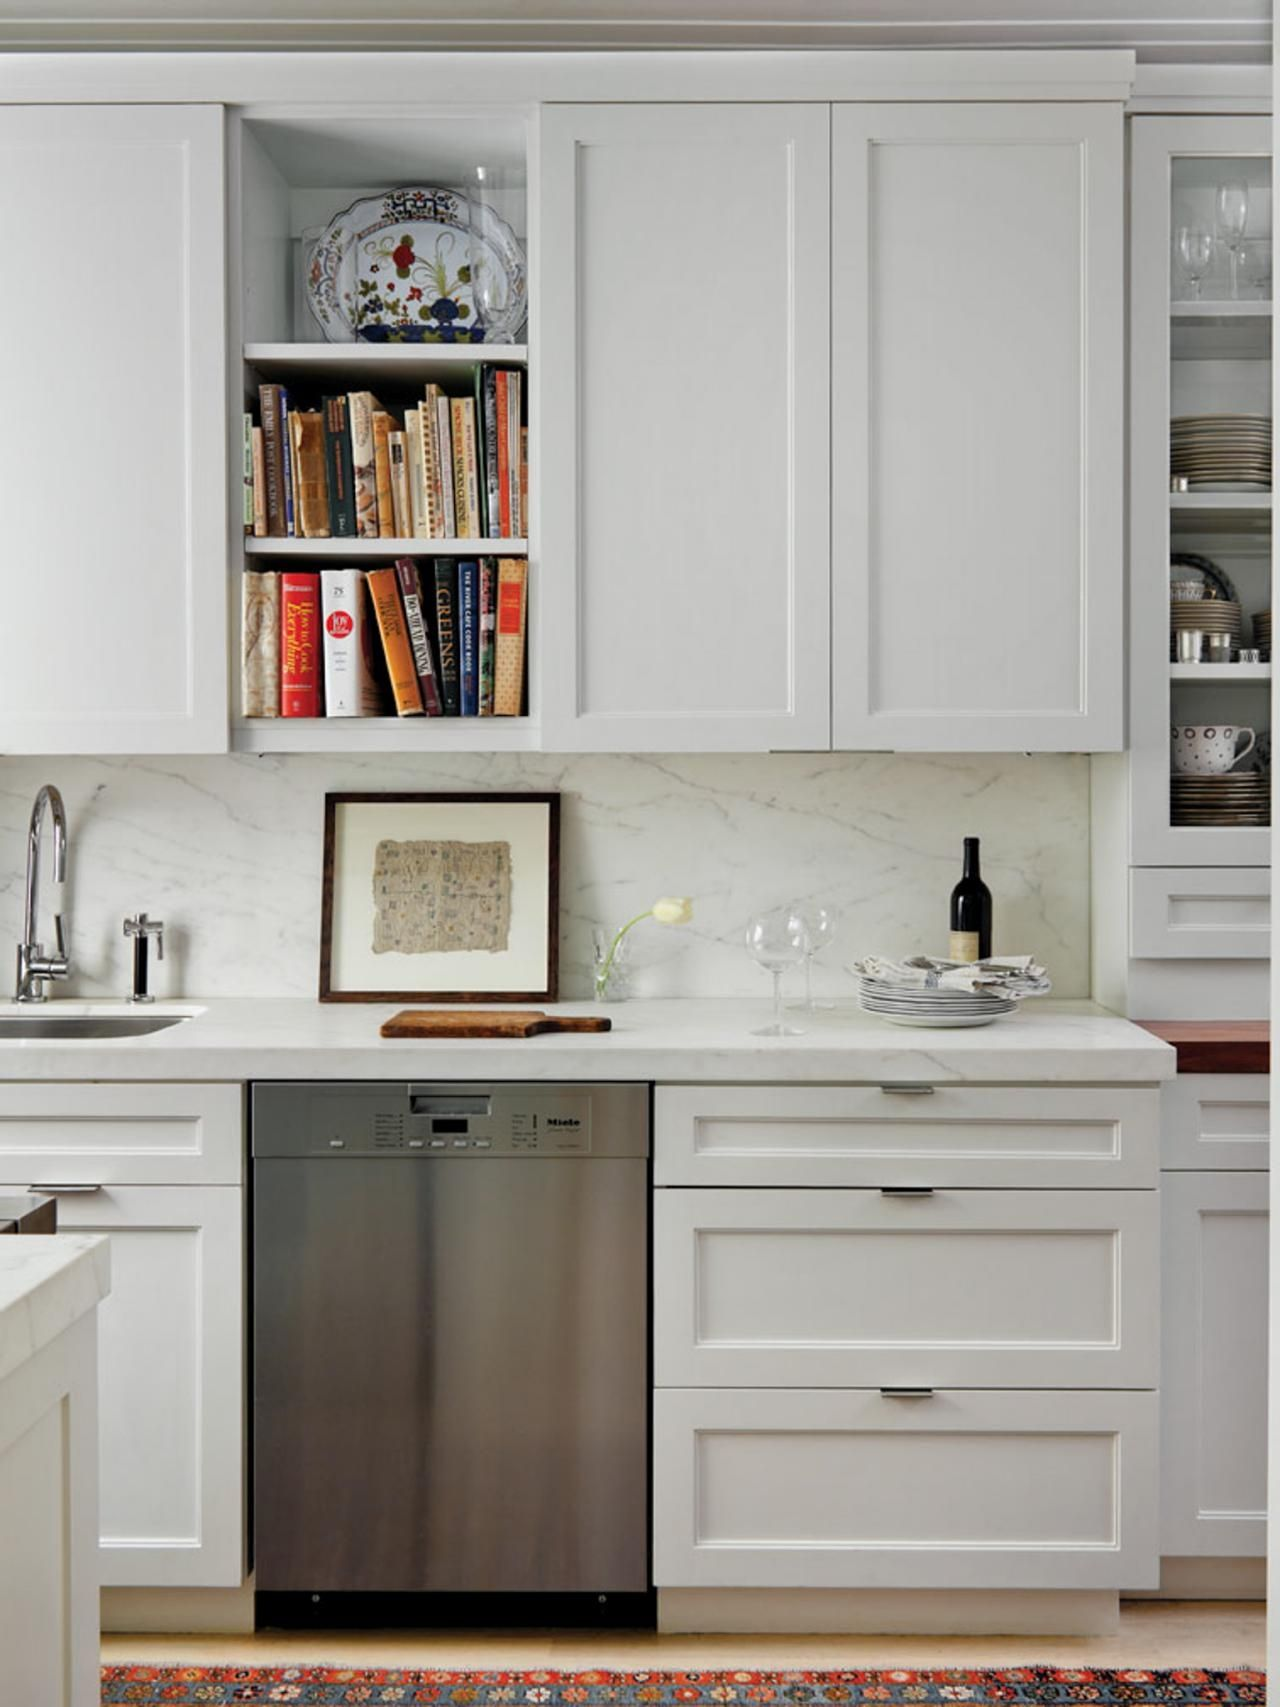 Shaker Cabinets Without Hardware Contemporary Kitchen Kitchen Design White Shaker Kitchen Cabinets